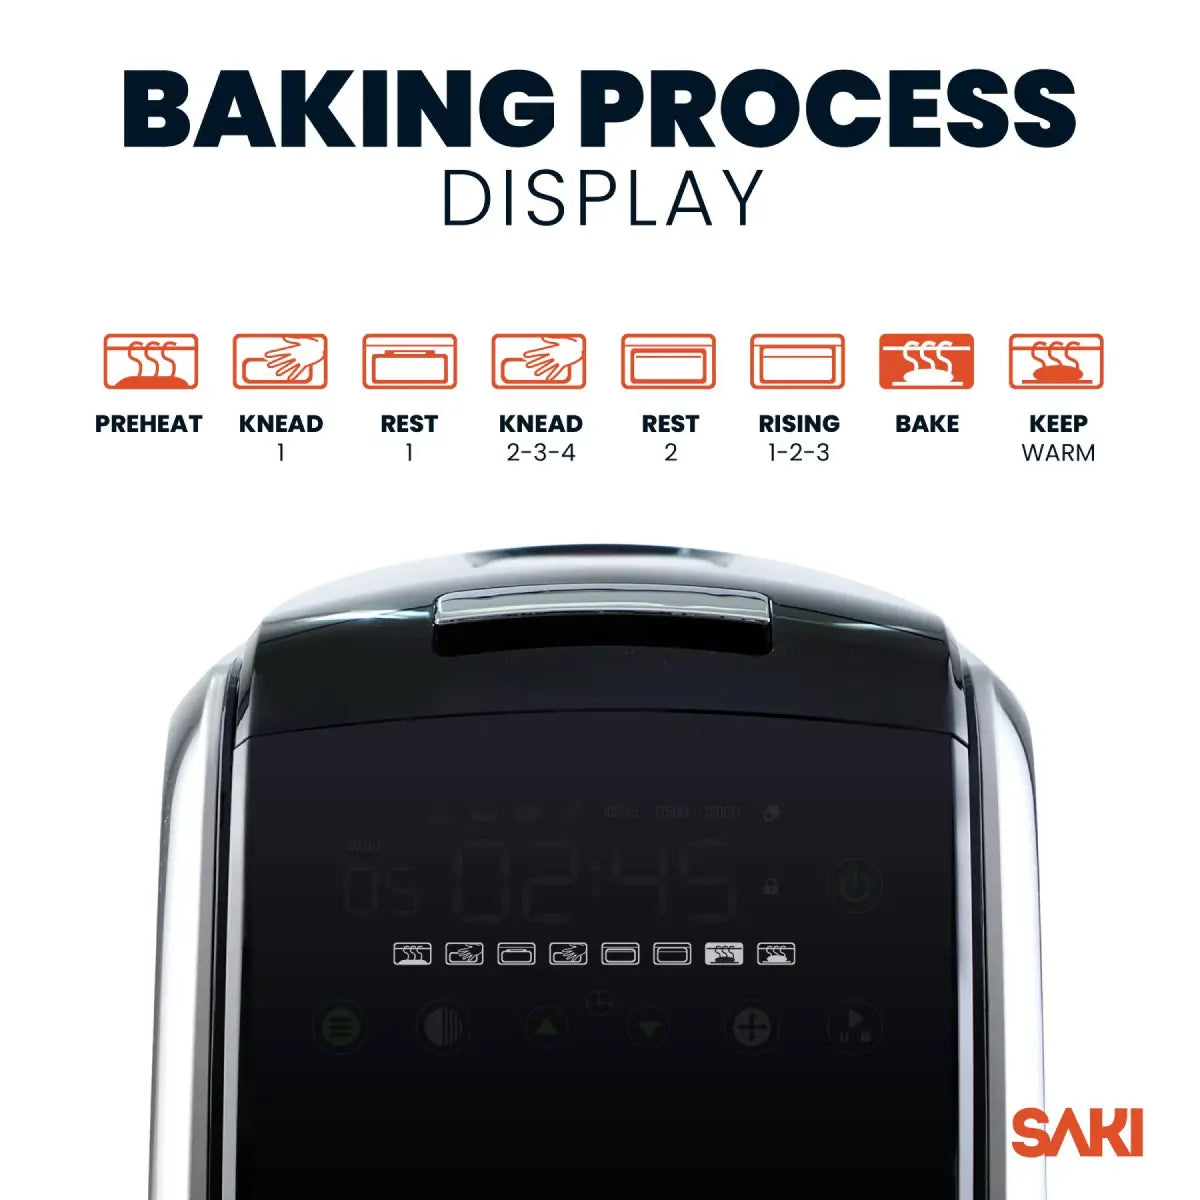 Baking Process Display